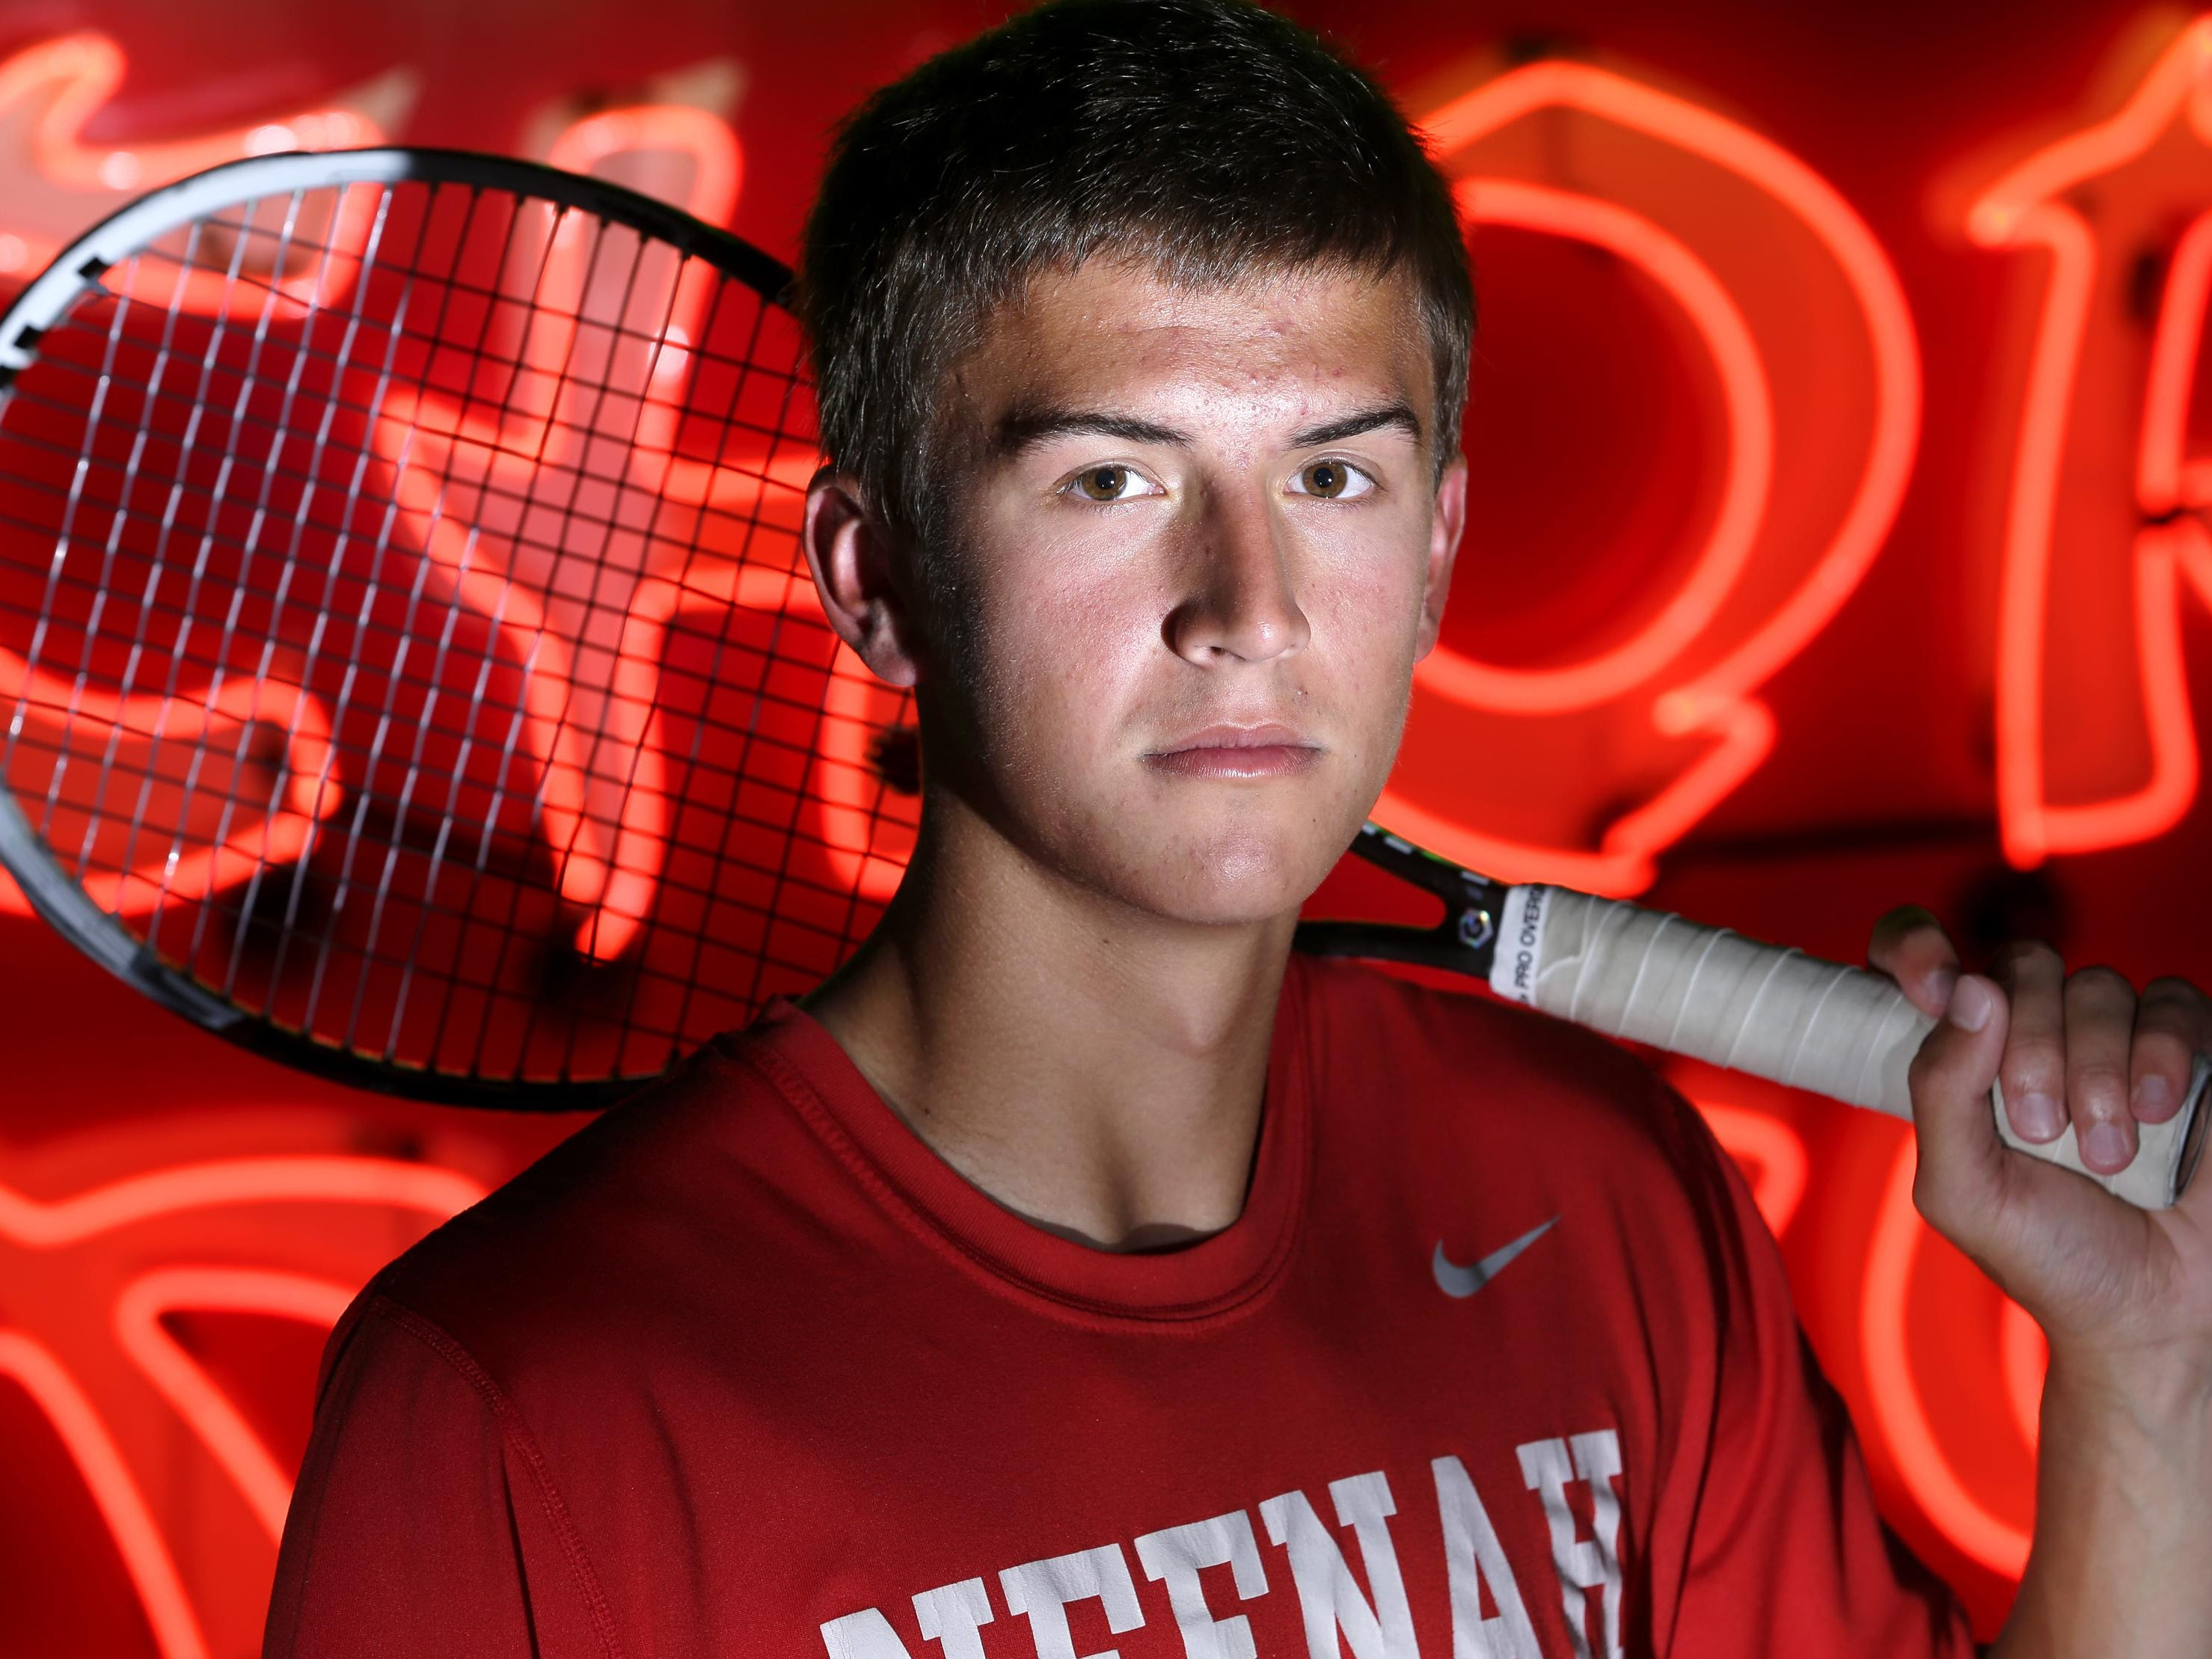 The Post-Crescent Media prep boys' tennis player of the year is Neenah's Ryan Risgaard, who was photographed at the History Museum at the Castle in Appleton.